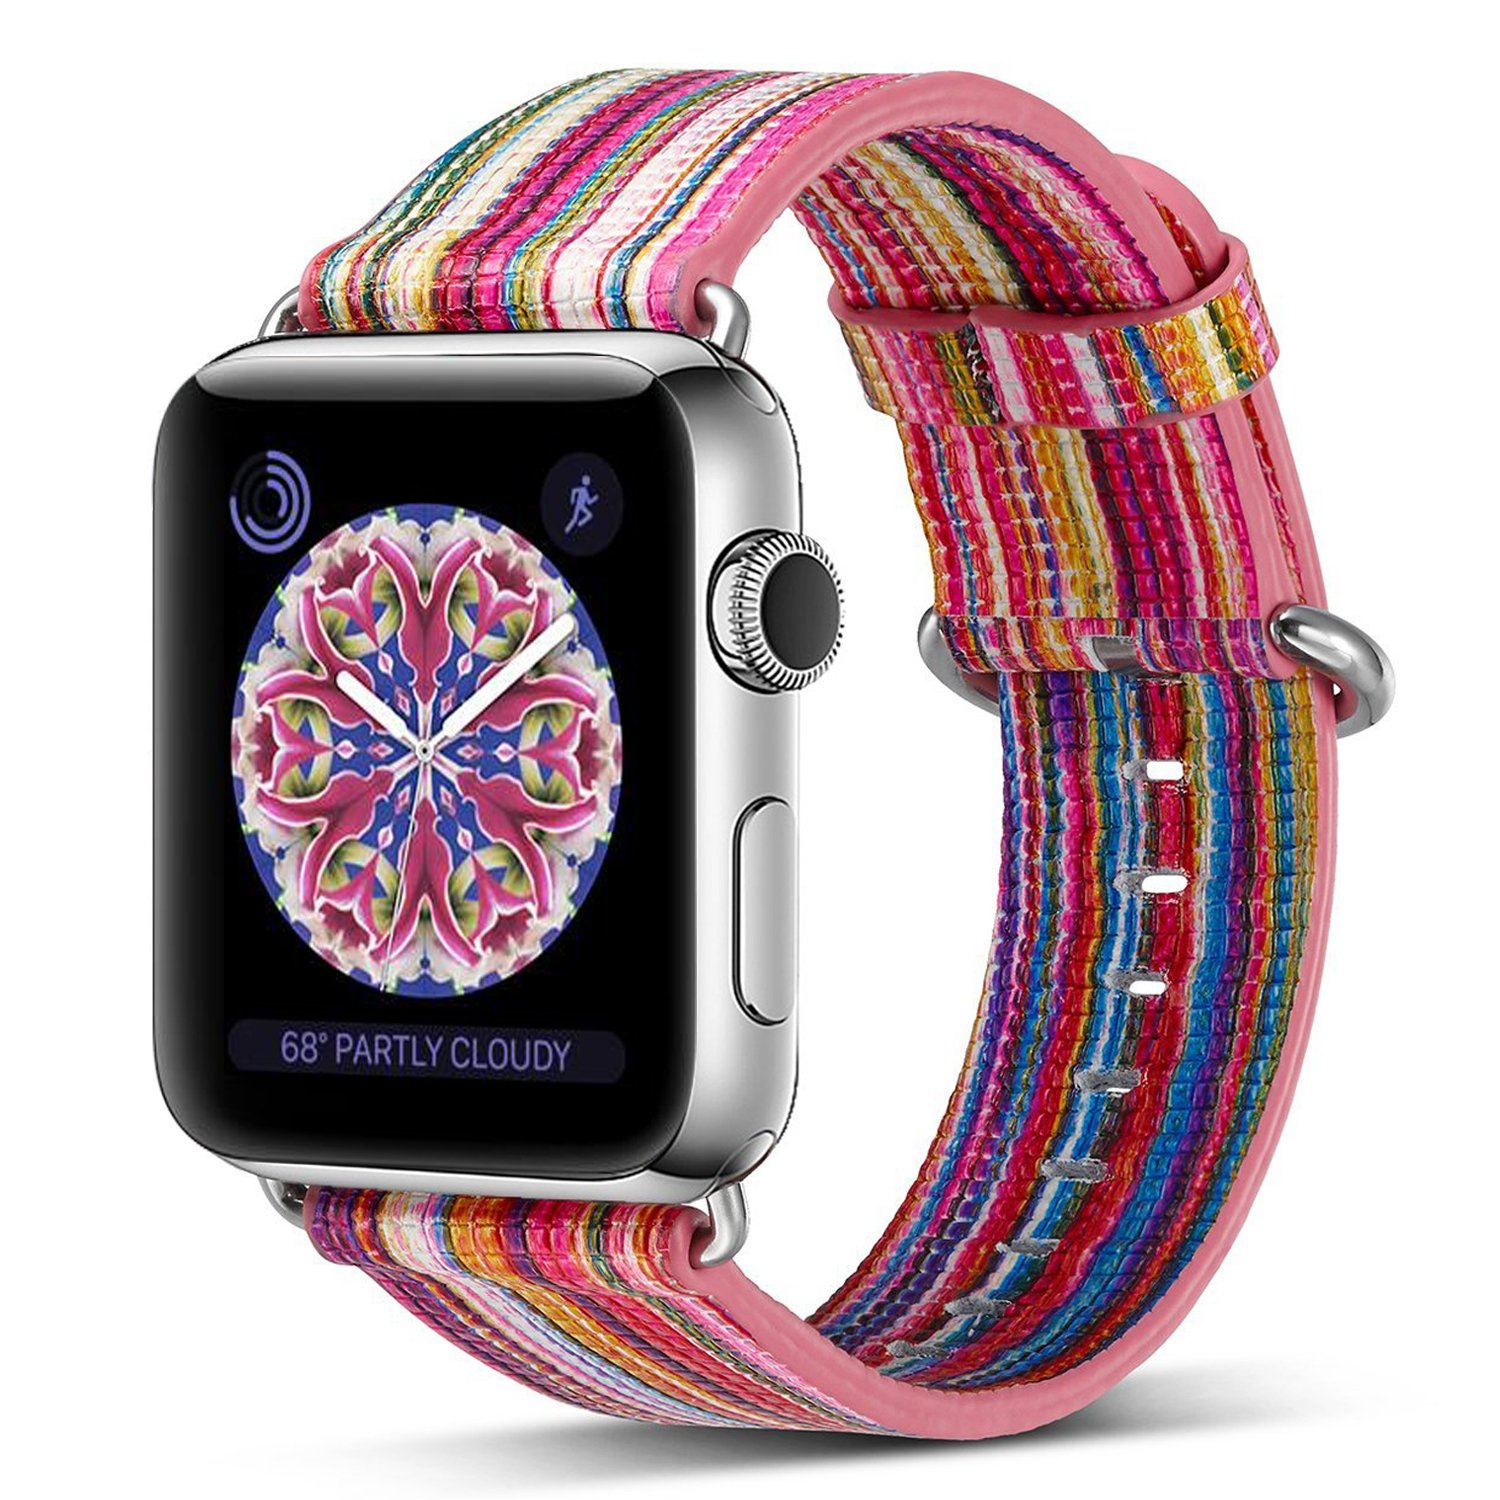 Pierre Case Apple watch band 38mm Genuine Leather iwatch strap Rainbow Replacement Bands with Stainless Metal Clasp for Apple Watch Series 3 Series 2 Series 1 Sports Edition Women Men (Pink D)